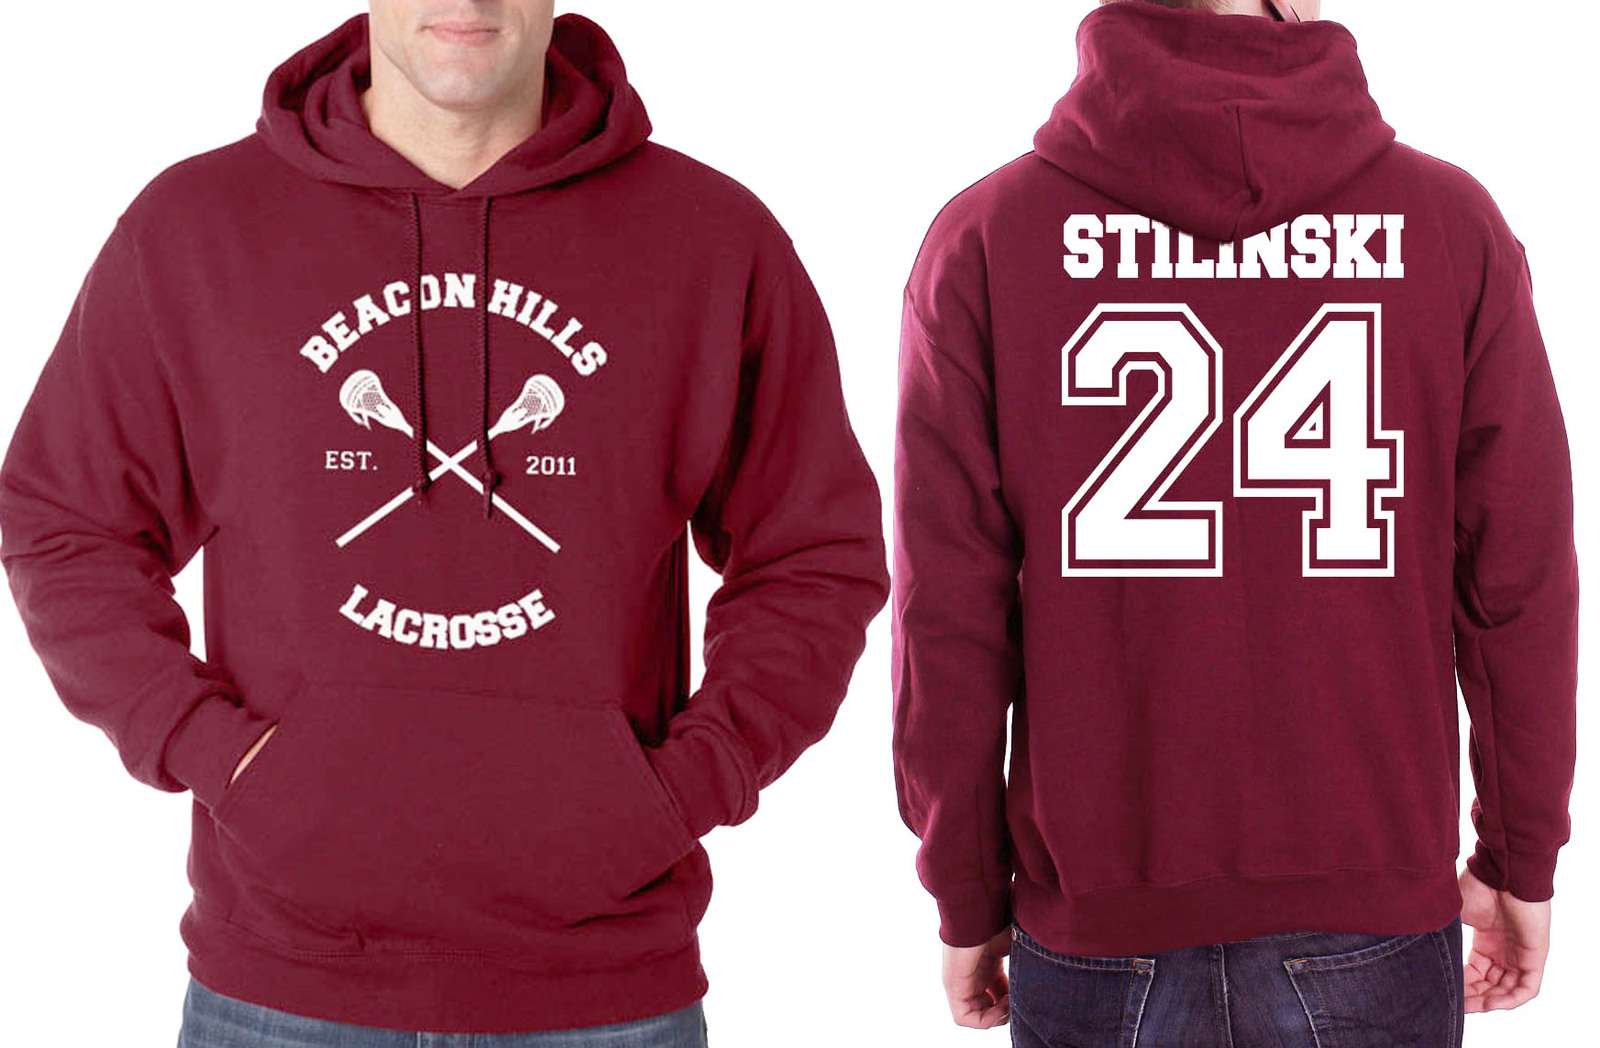 Primary image for Stilinski 24 Teen Stiles stilinski CROSS Beacon Hills Lacrosse Maroon hoodie